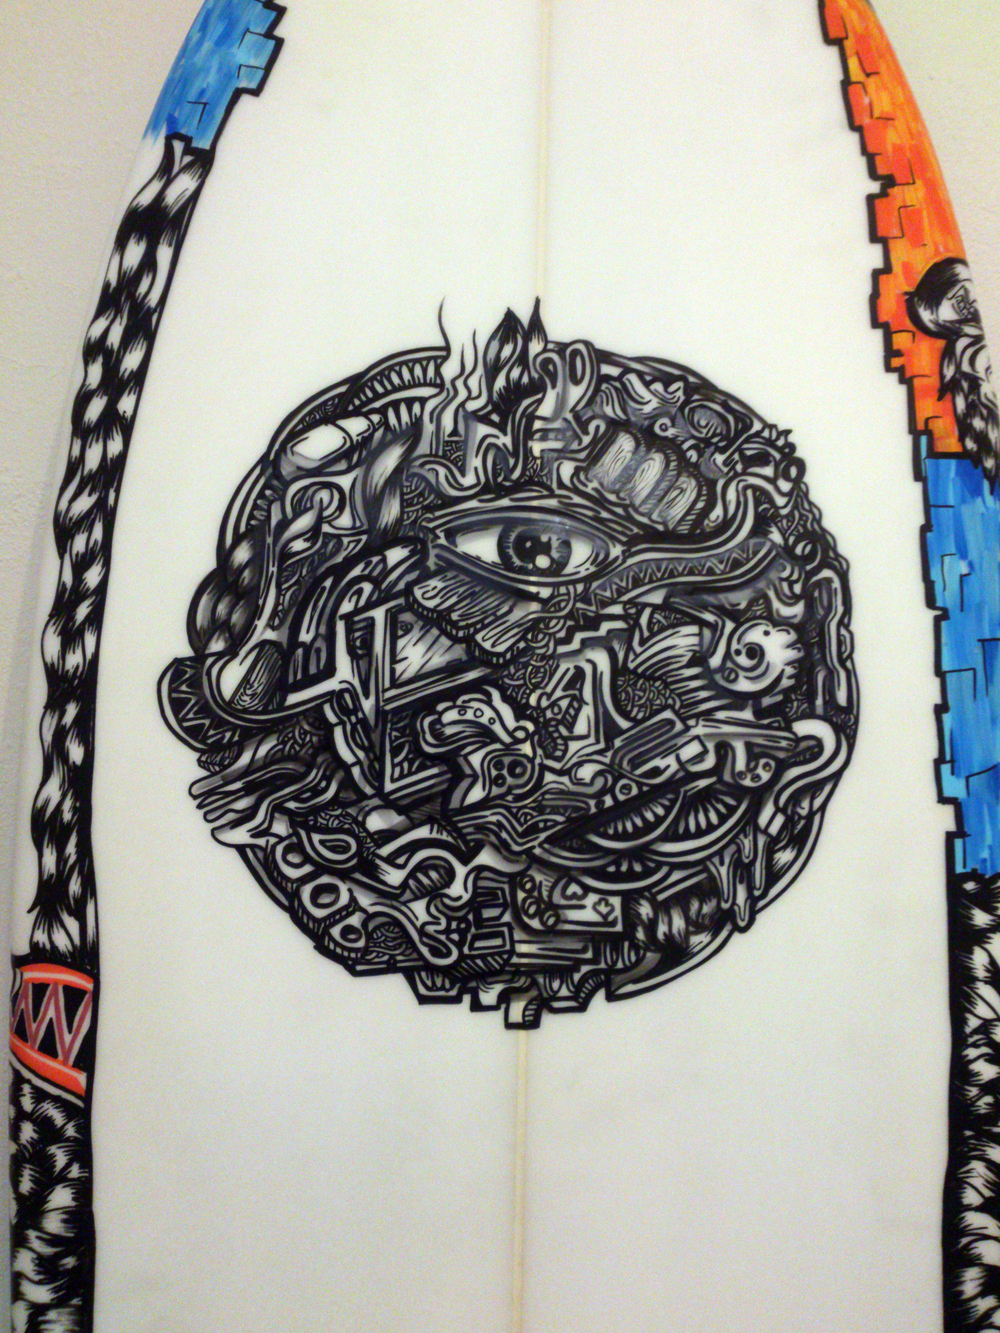 eyeball-detailed-illustration-tattoo-surfboard-custom-art-sam-shennan-ud3-handmade-handpainted.jpg